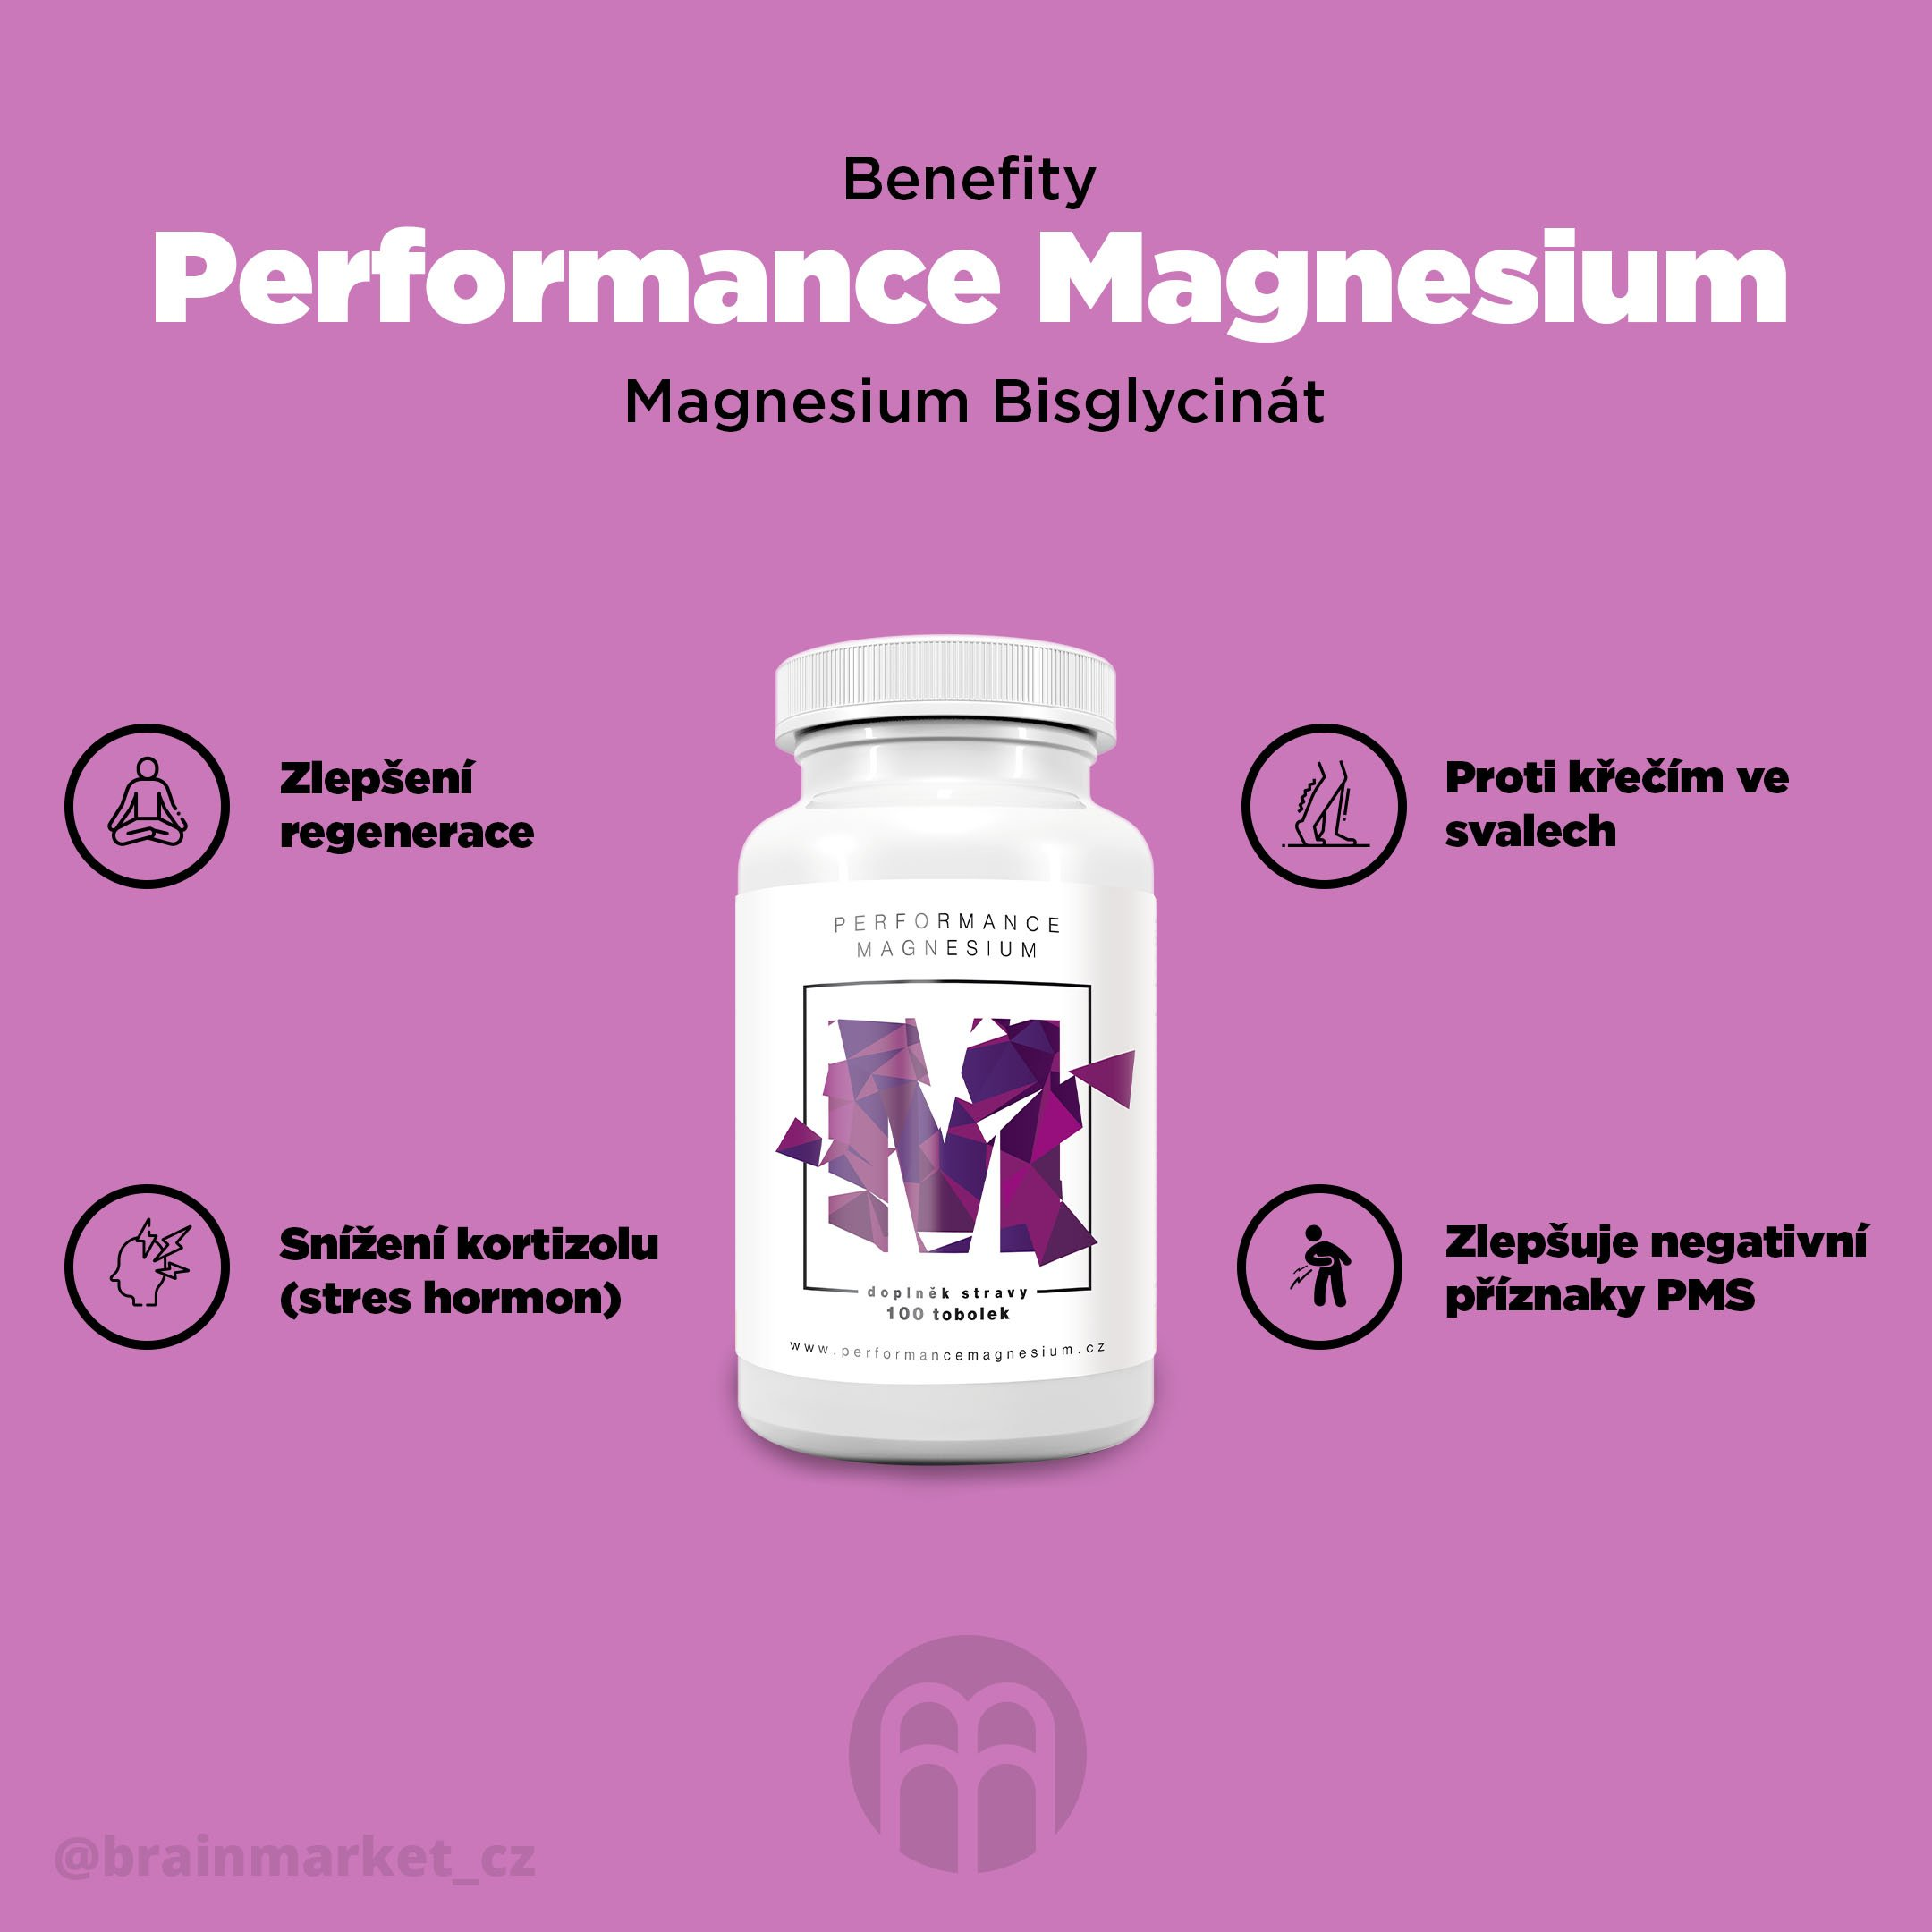 performance-magnesium-benefity